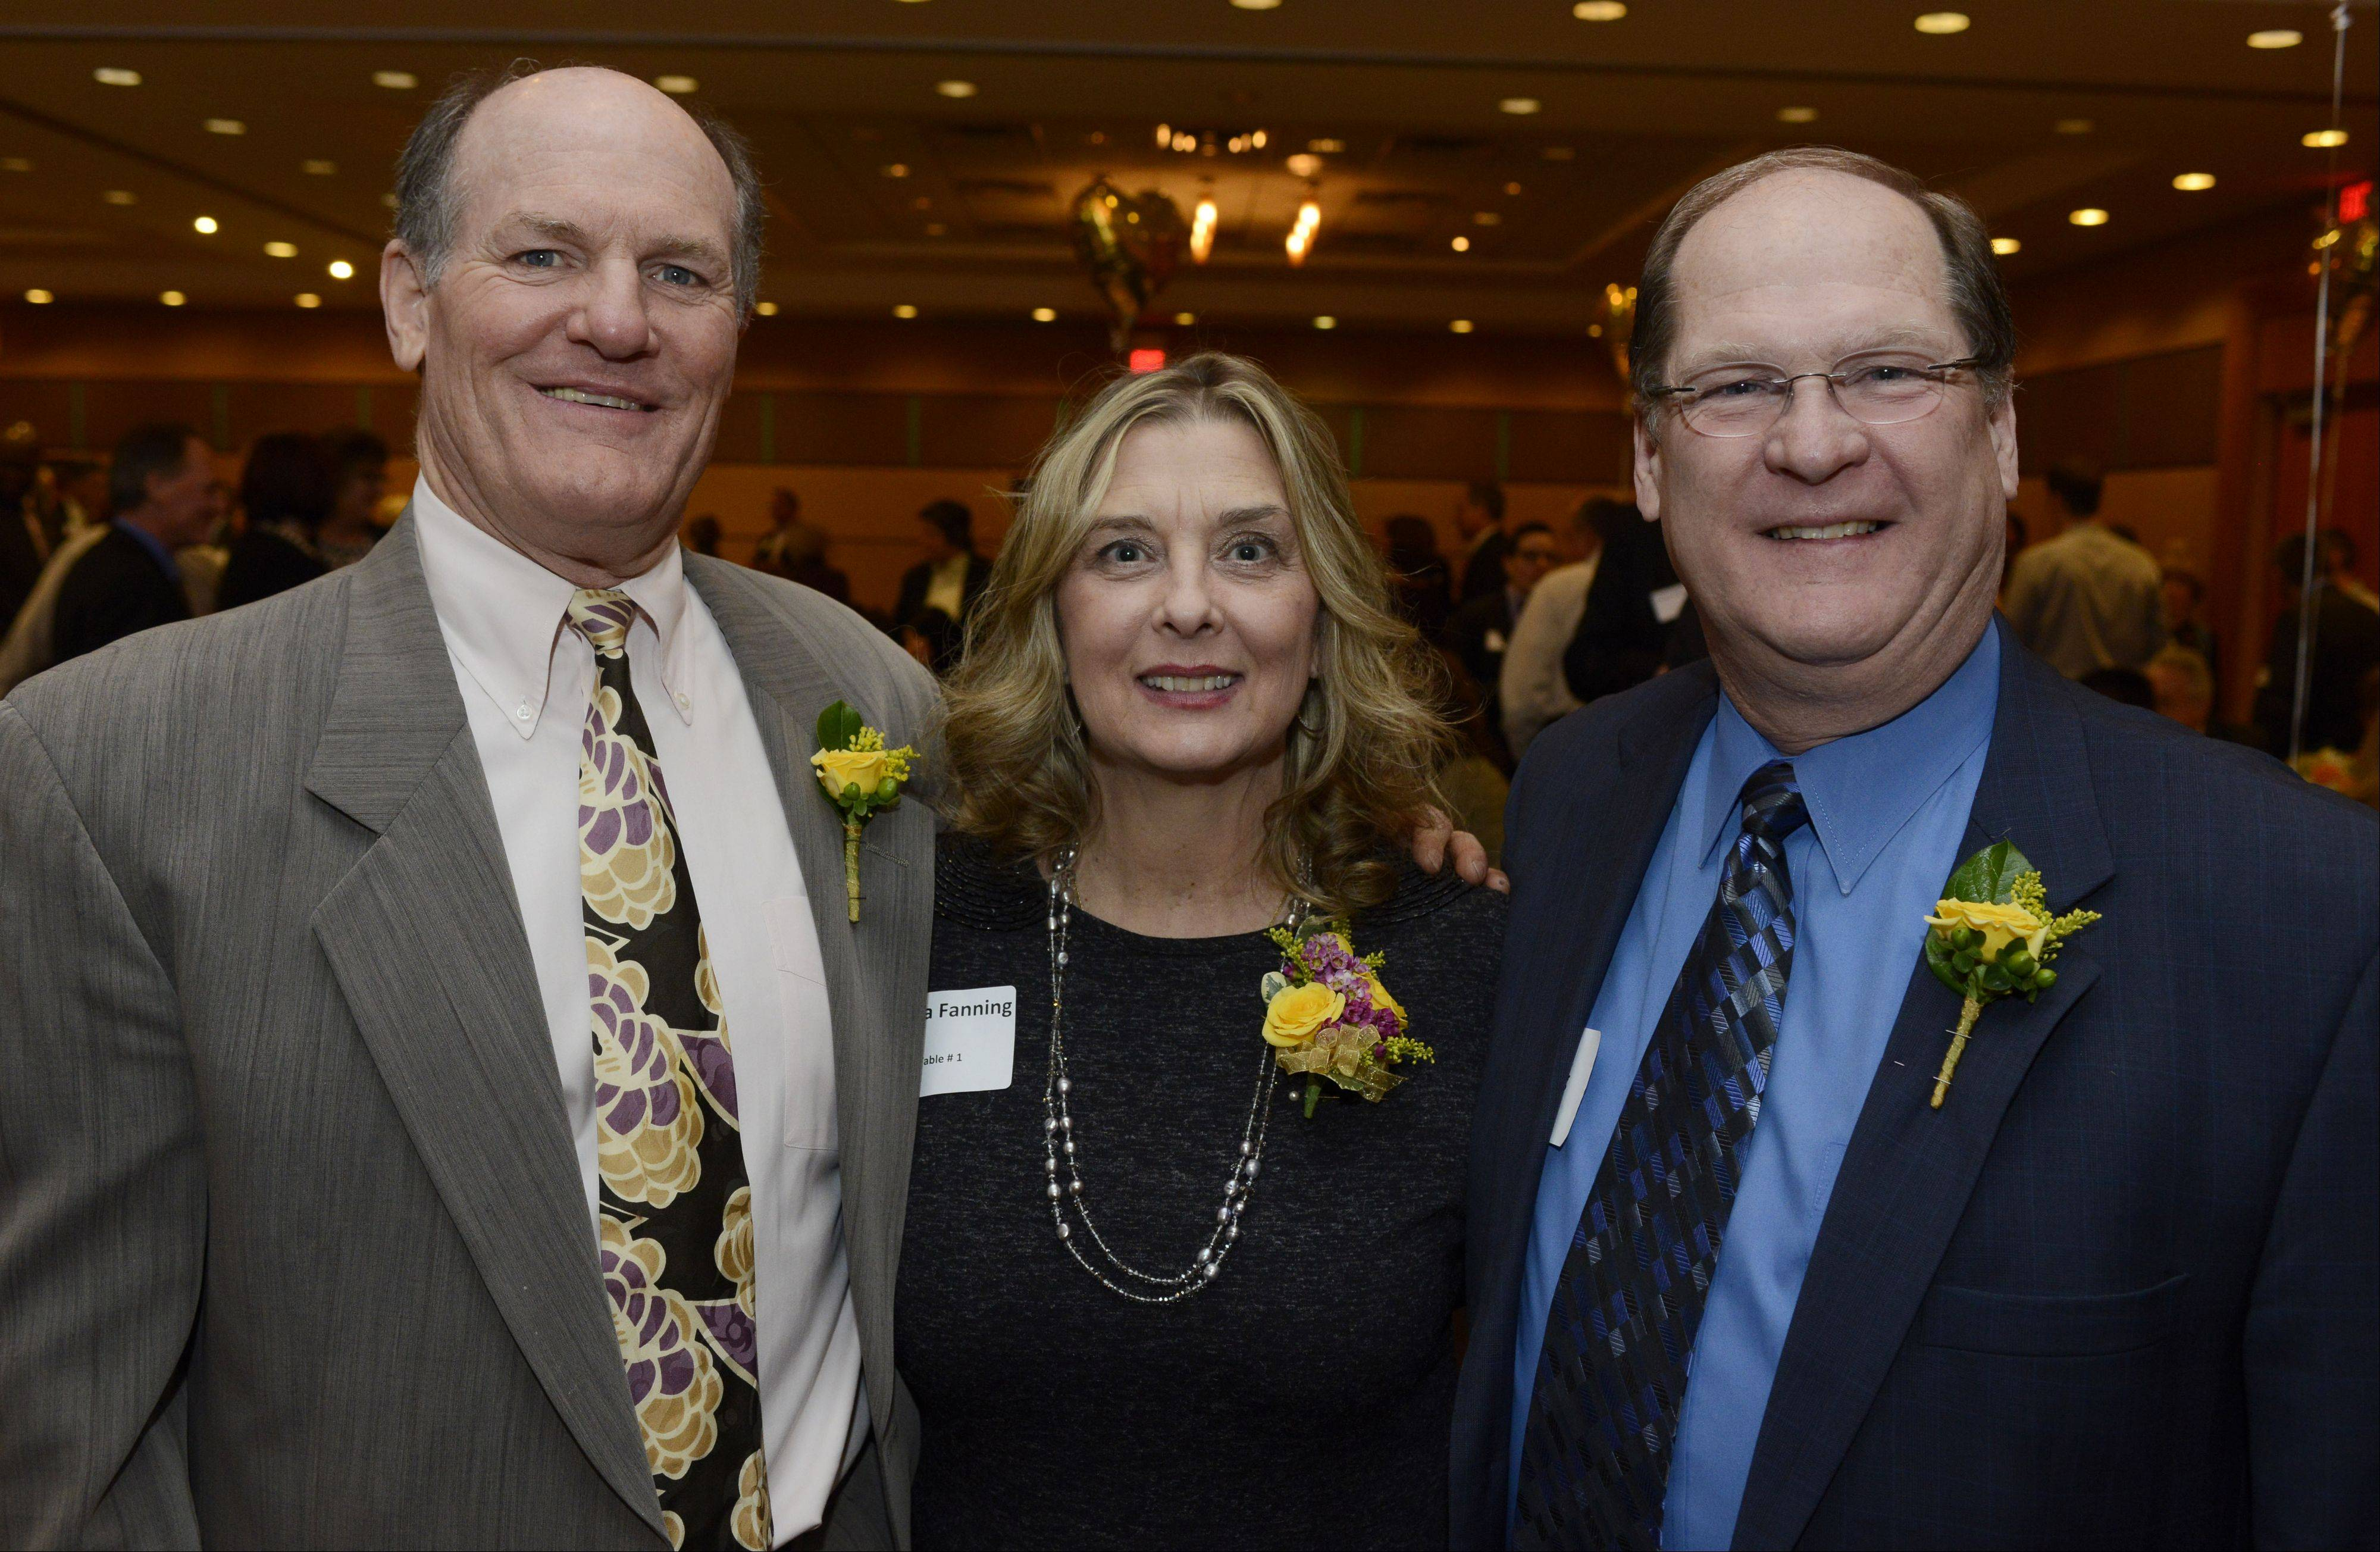 Left to right, Hearts of Gold Award winners Sam Moser, Donna Fanning and her husband, Patrick, during Arlington Heights� 15th annual Hearts of Gold dinner Saturday night. Moser won the Community Spirit Award, while the Fannings won the Heroic Award.